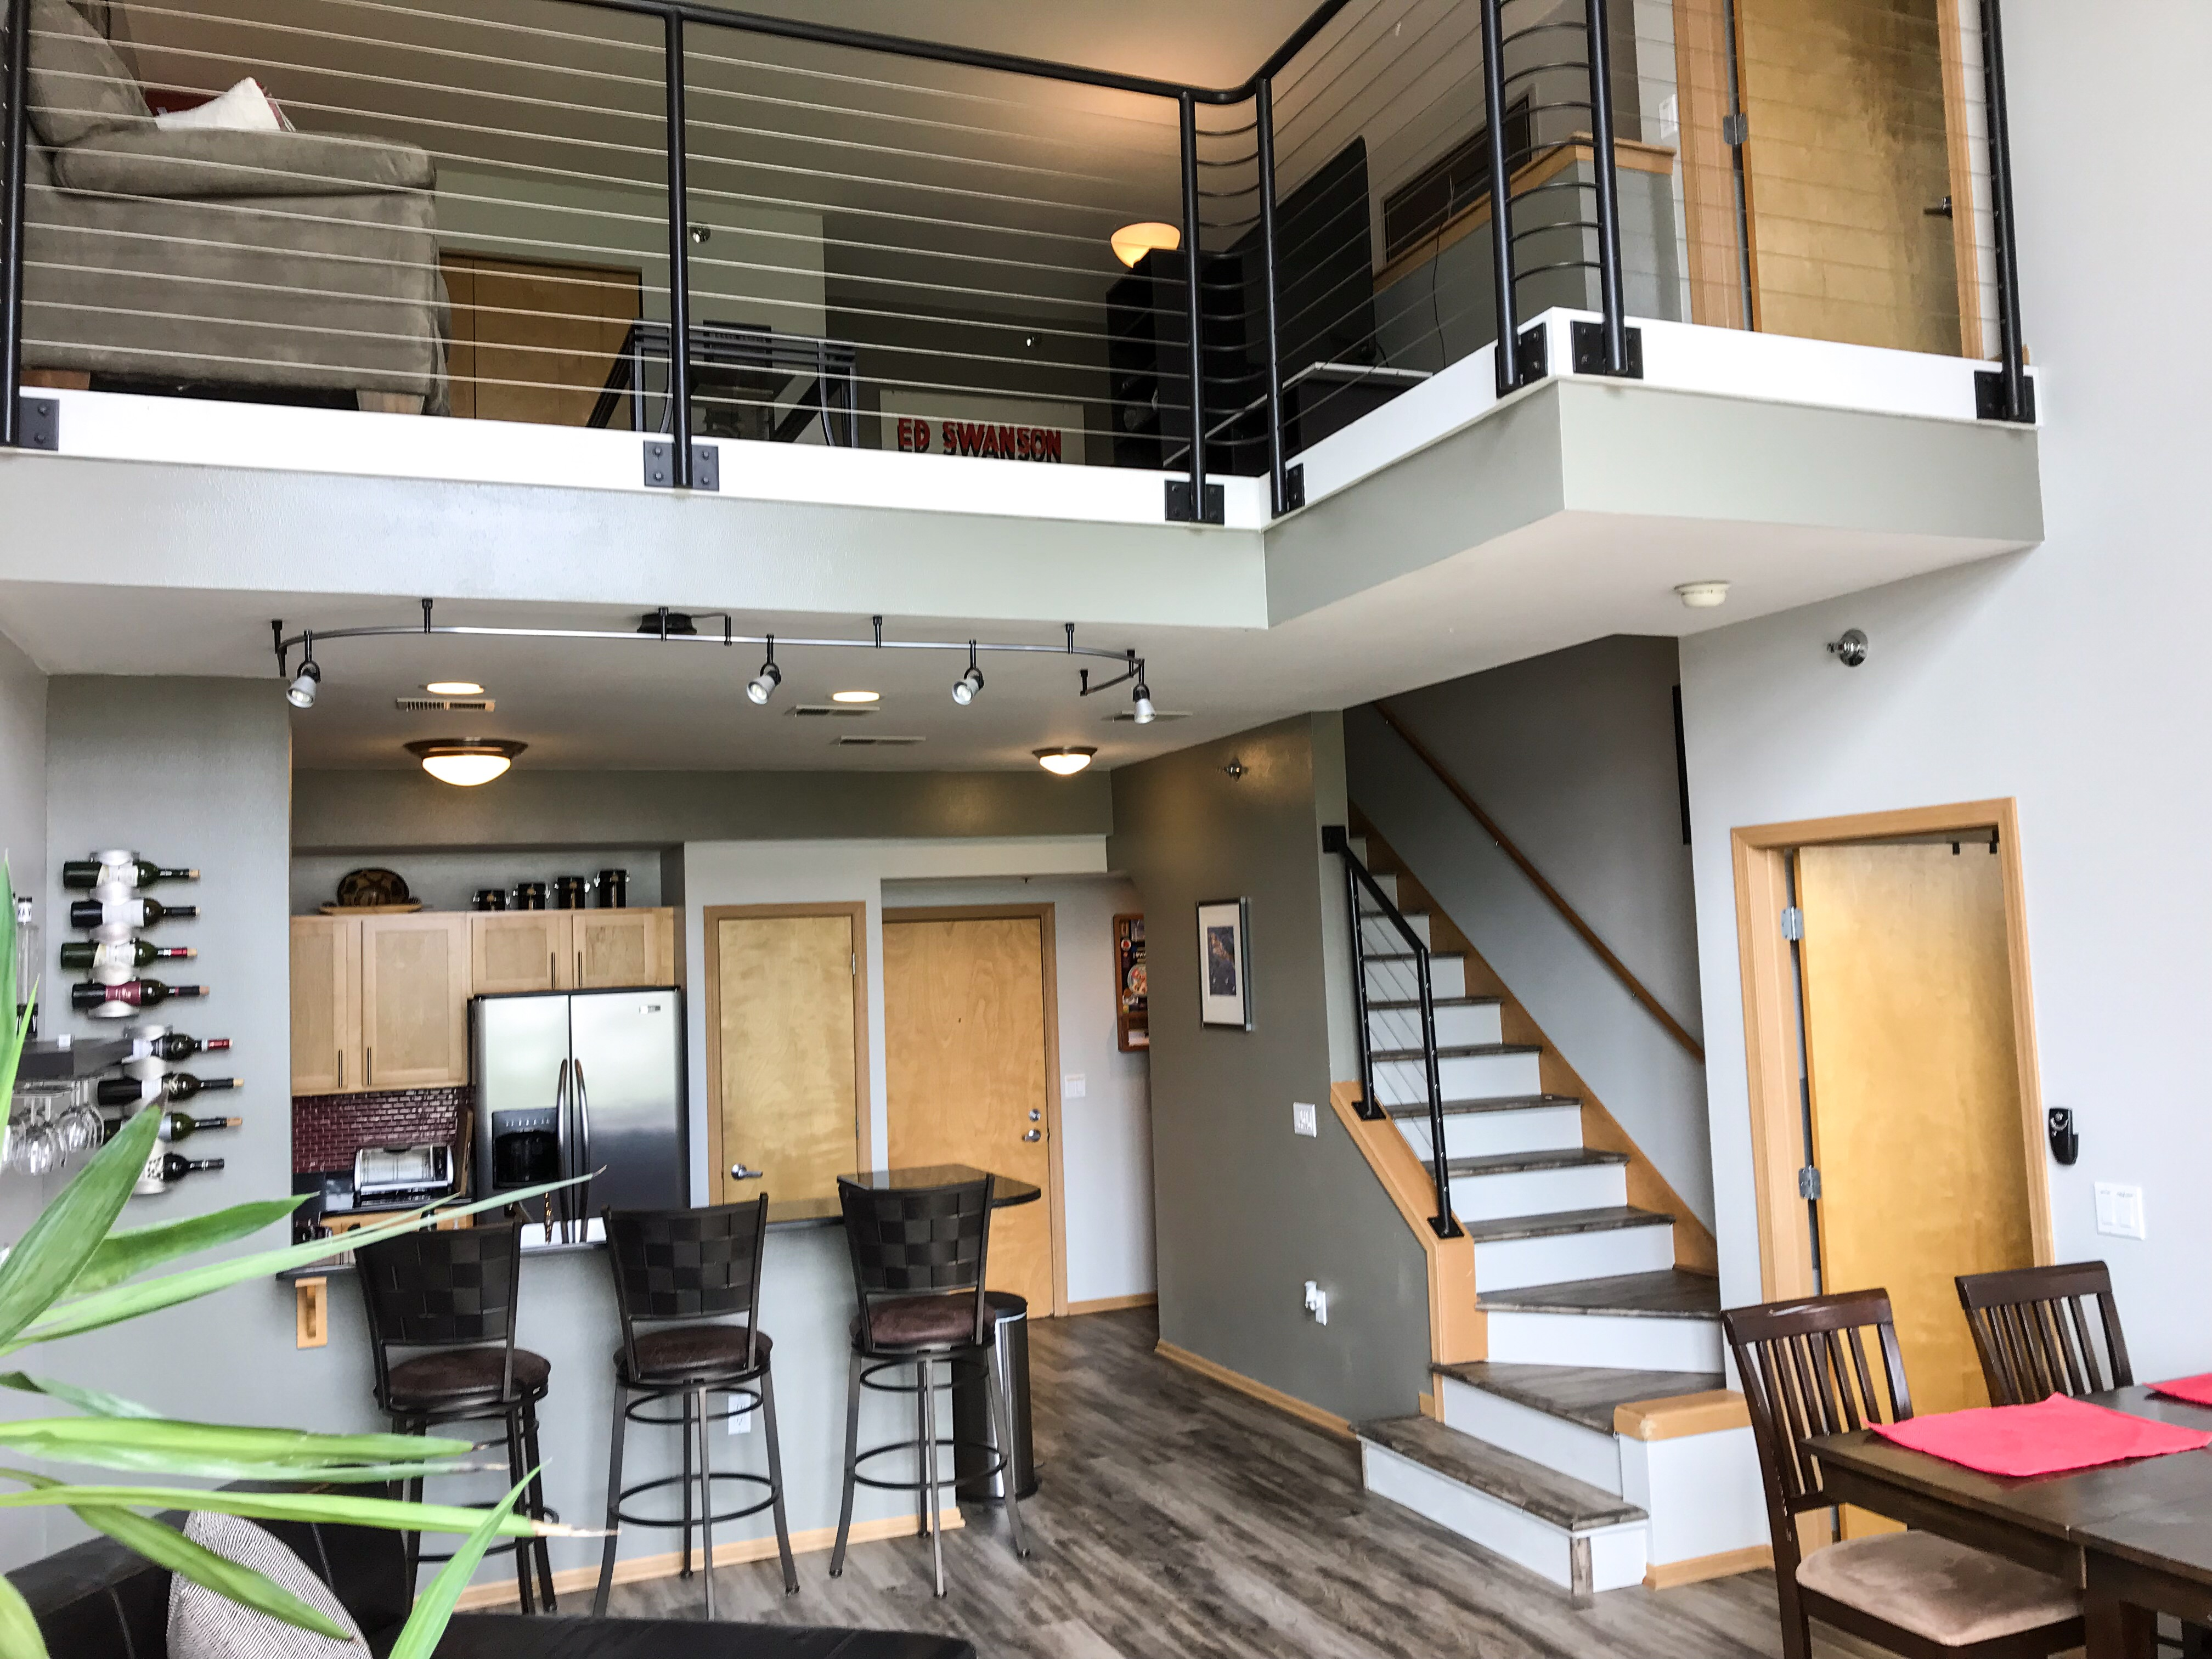 Fully Furnished Two Bedroom Modern Loft Style Condo In